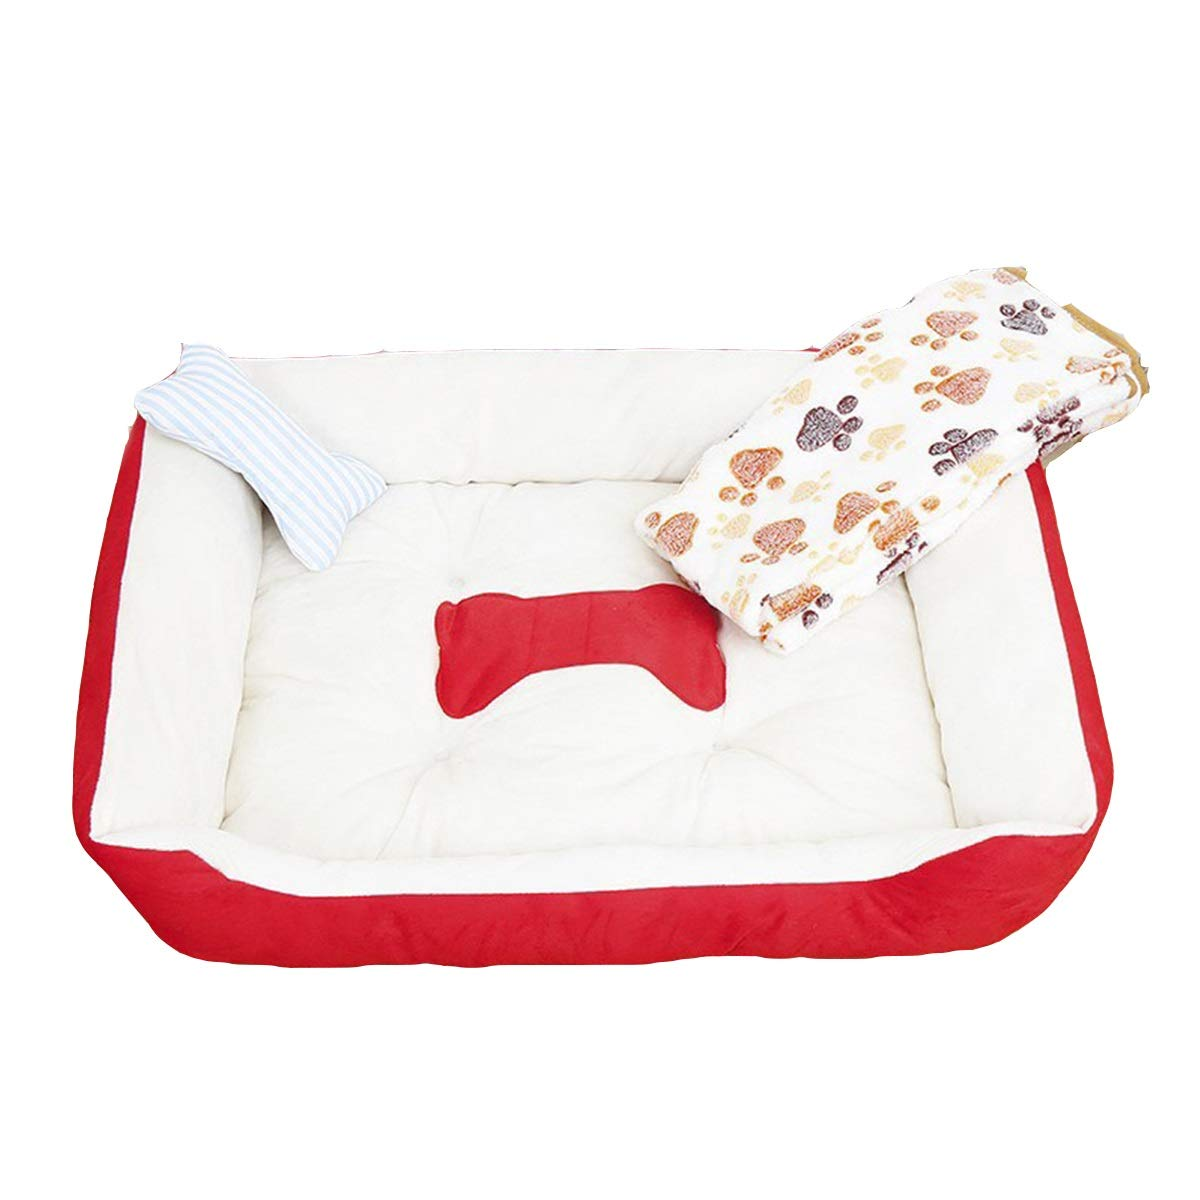 Red M red M Xingganglengyin Kennel, Small Medium Dog Cat Litter, Four Seasons Universal, Pet Kennel Mattress, Four Seasons Universal, 3 Piece Set, bluee, Pink, Red (color   Red, Size   M)